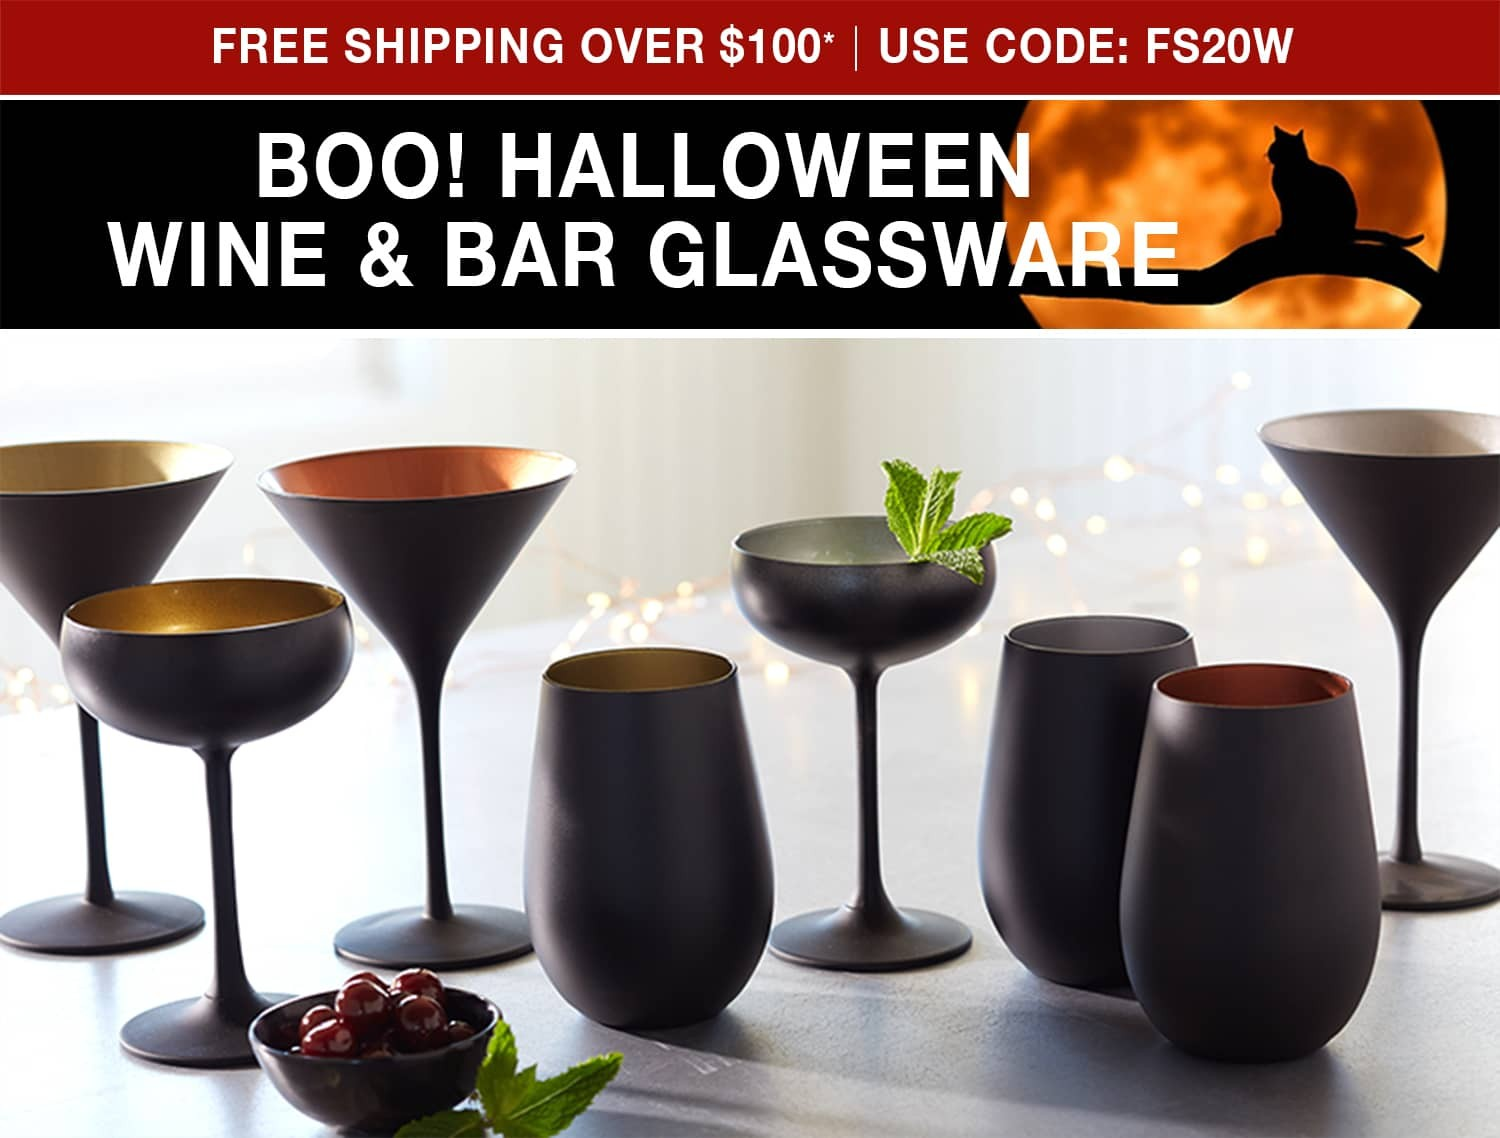 Halloween Glassware - Free Shipping on Orders Over $100 - Use Code FS20W